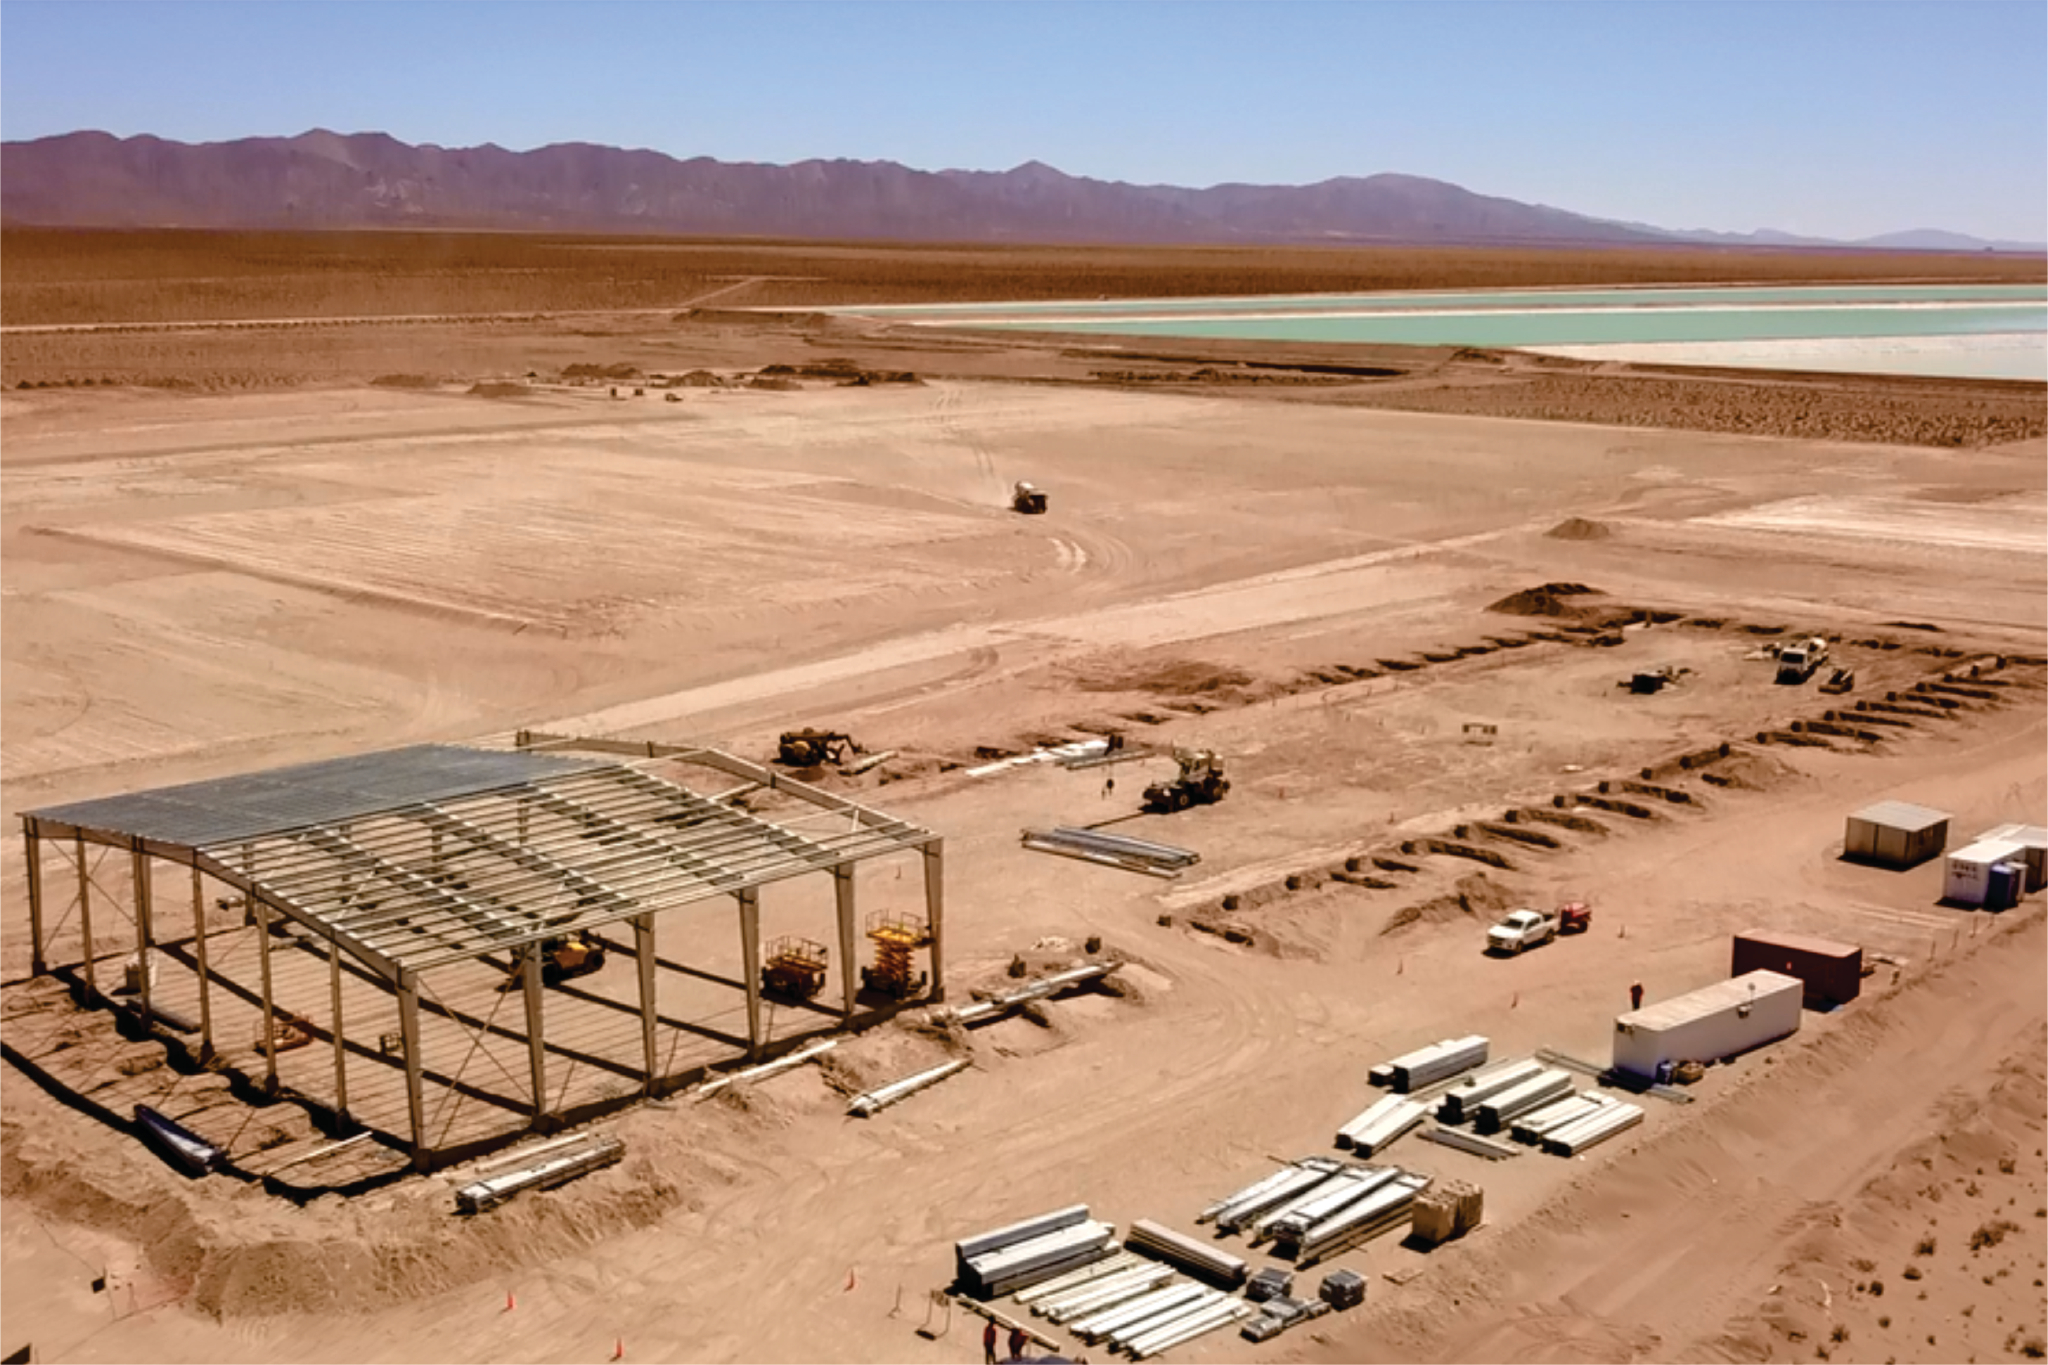 Construction underway in Argentina